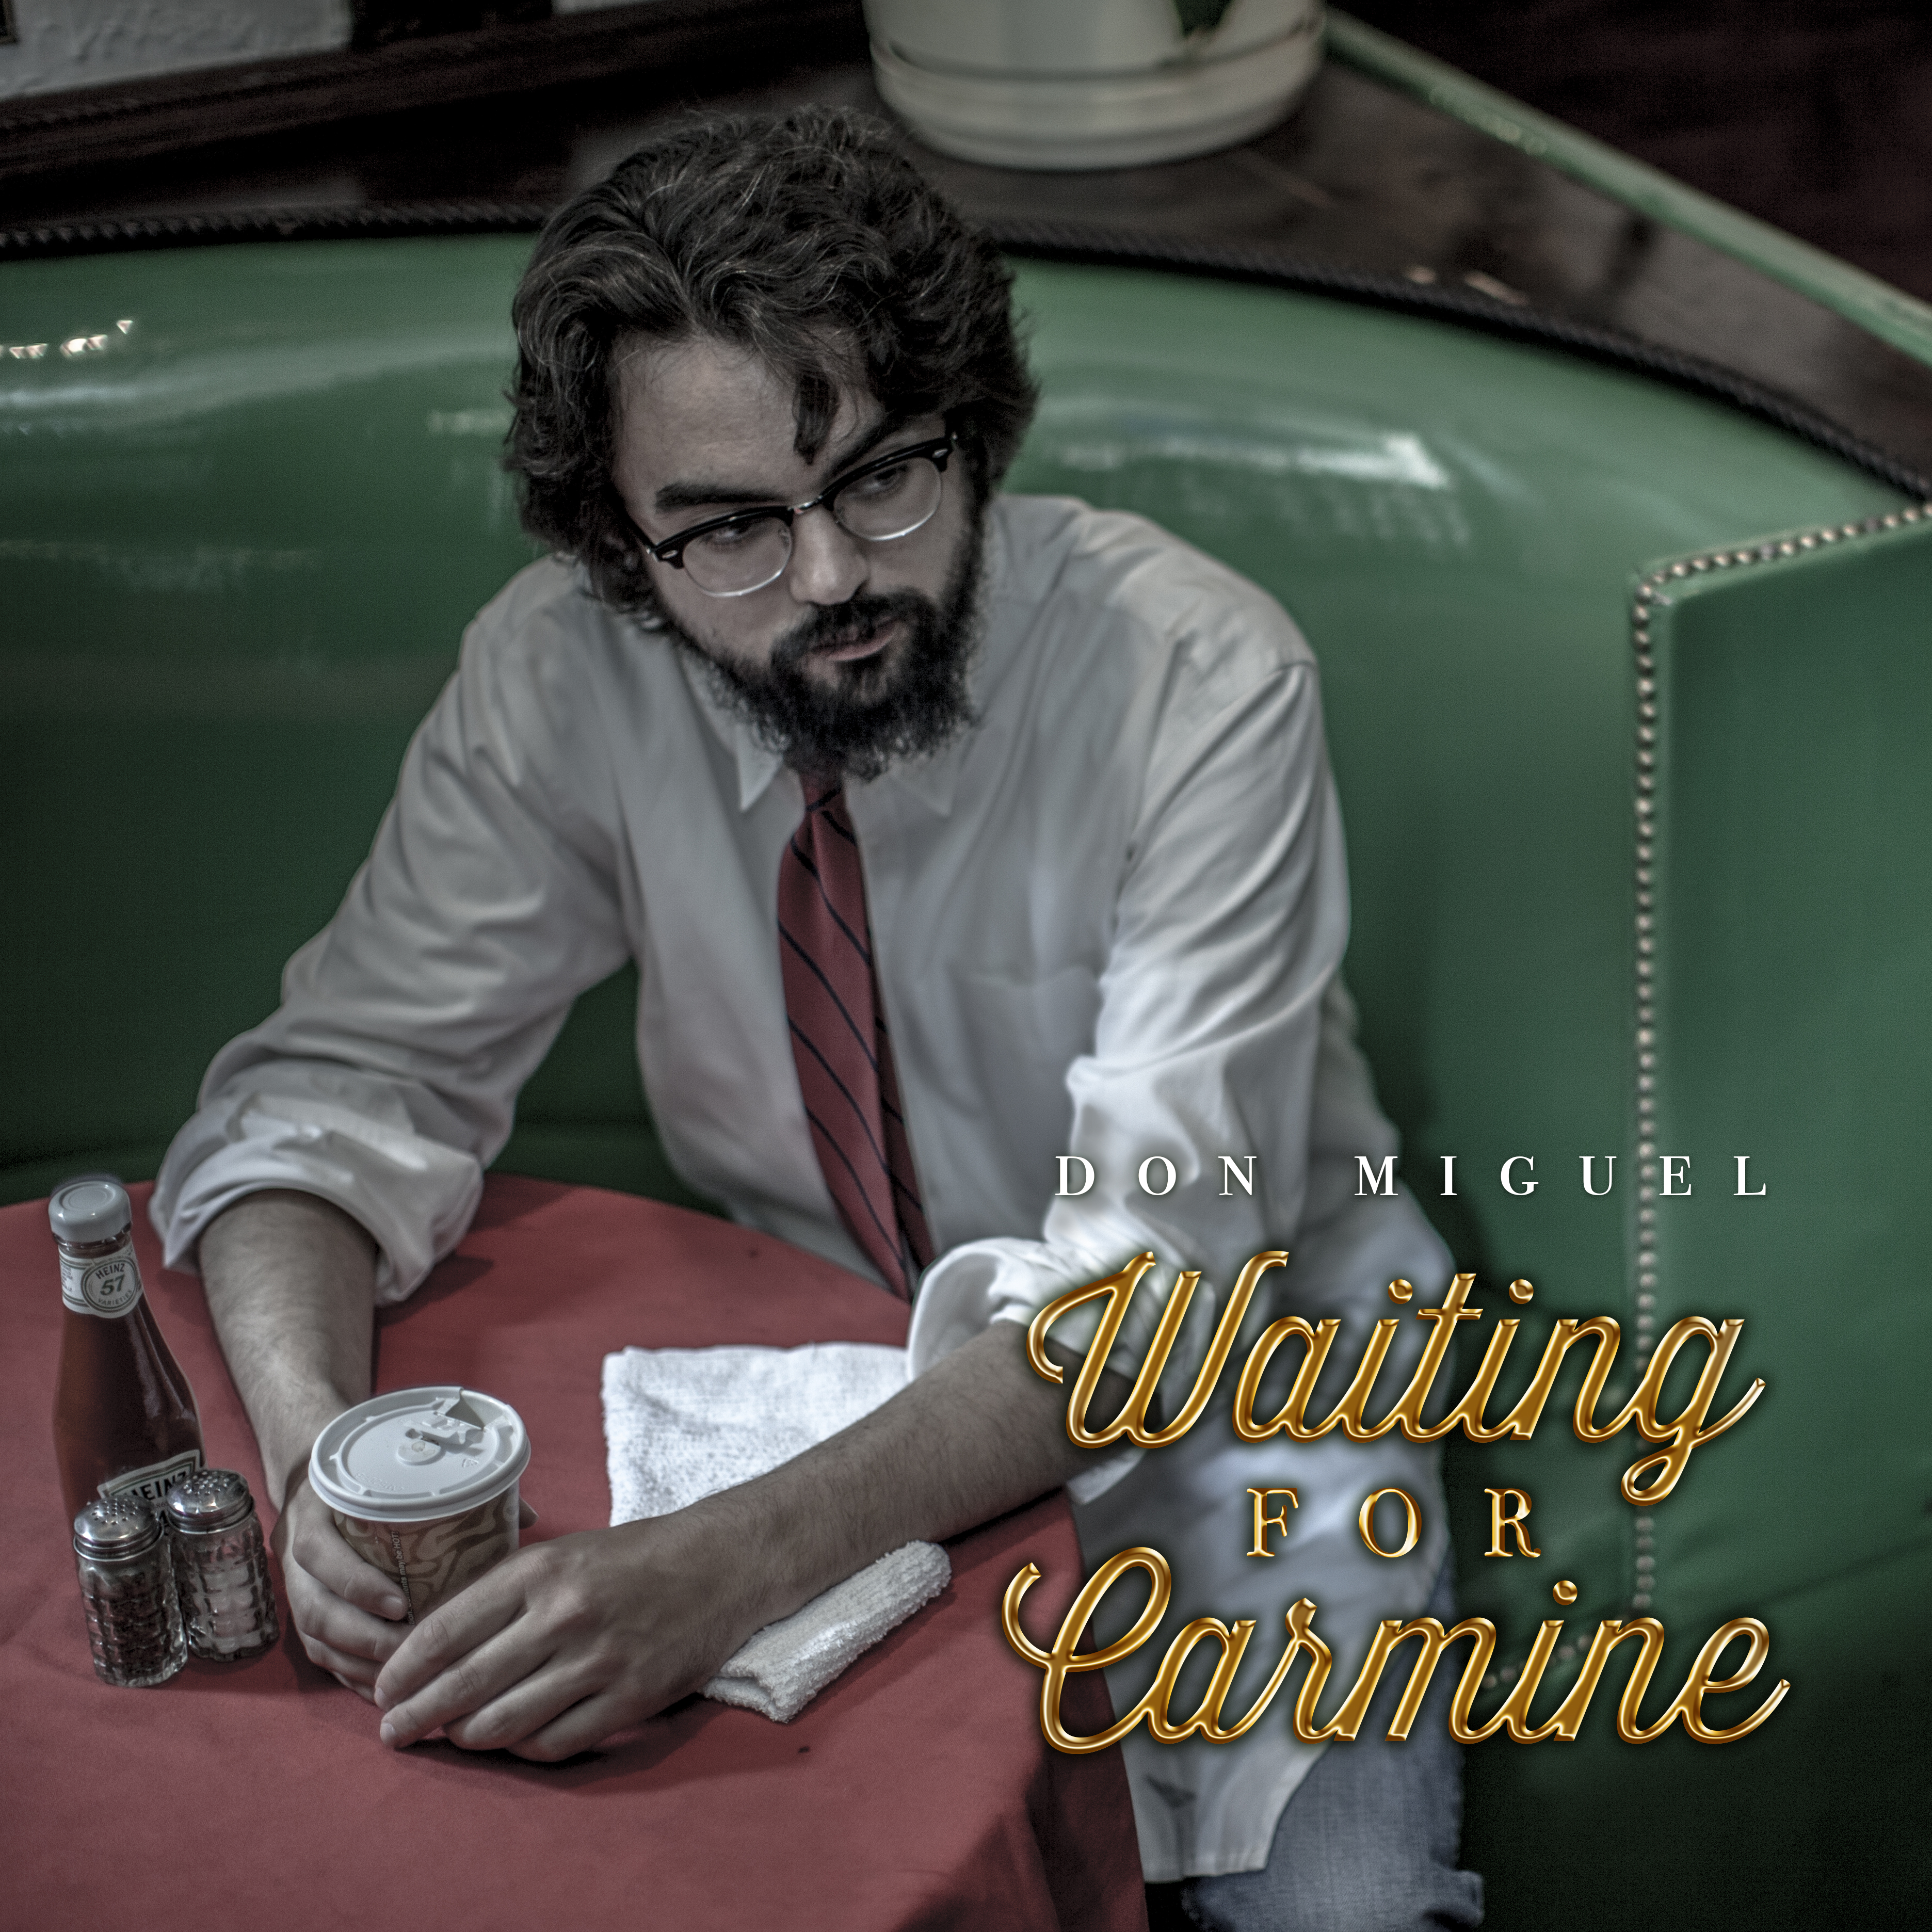 EXCLUSIVE: A Corner Booth at McManus Café – Don Miguel is 'Waiting For Carmine' (VIDEO)